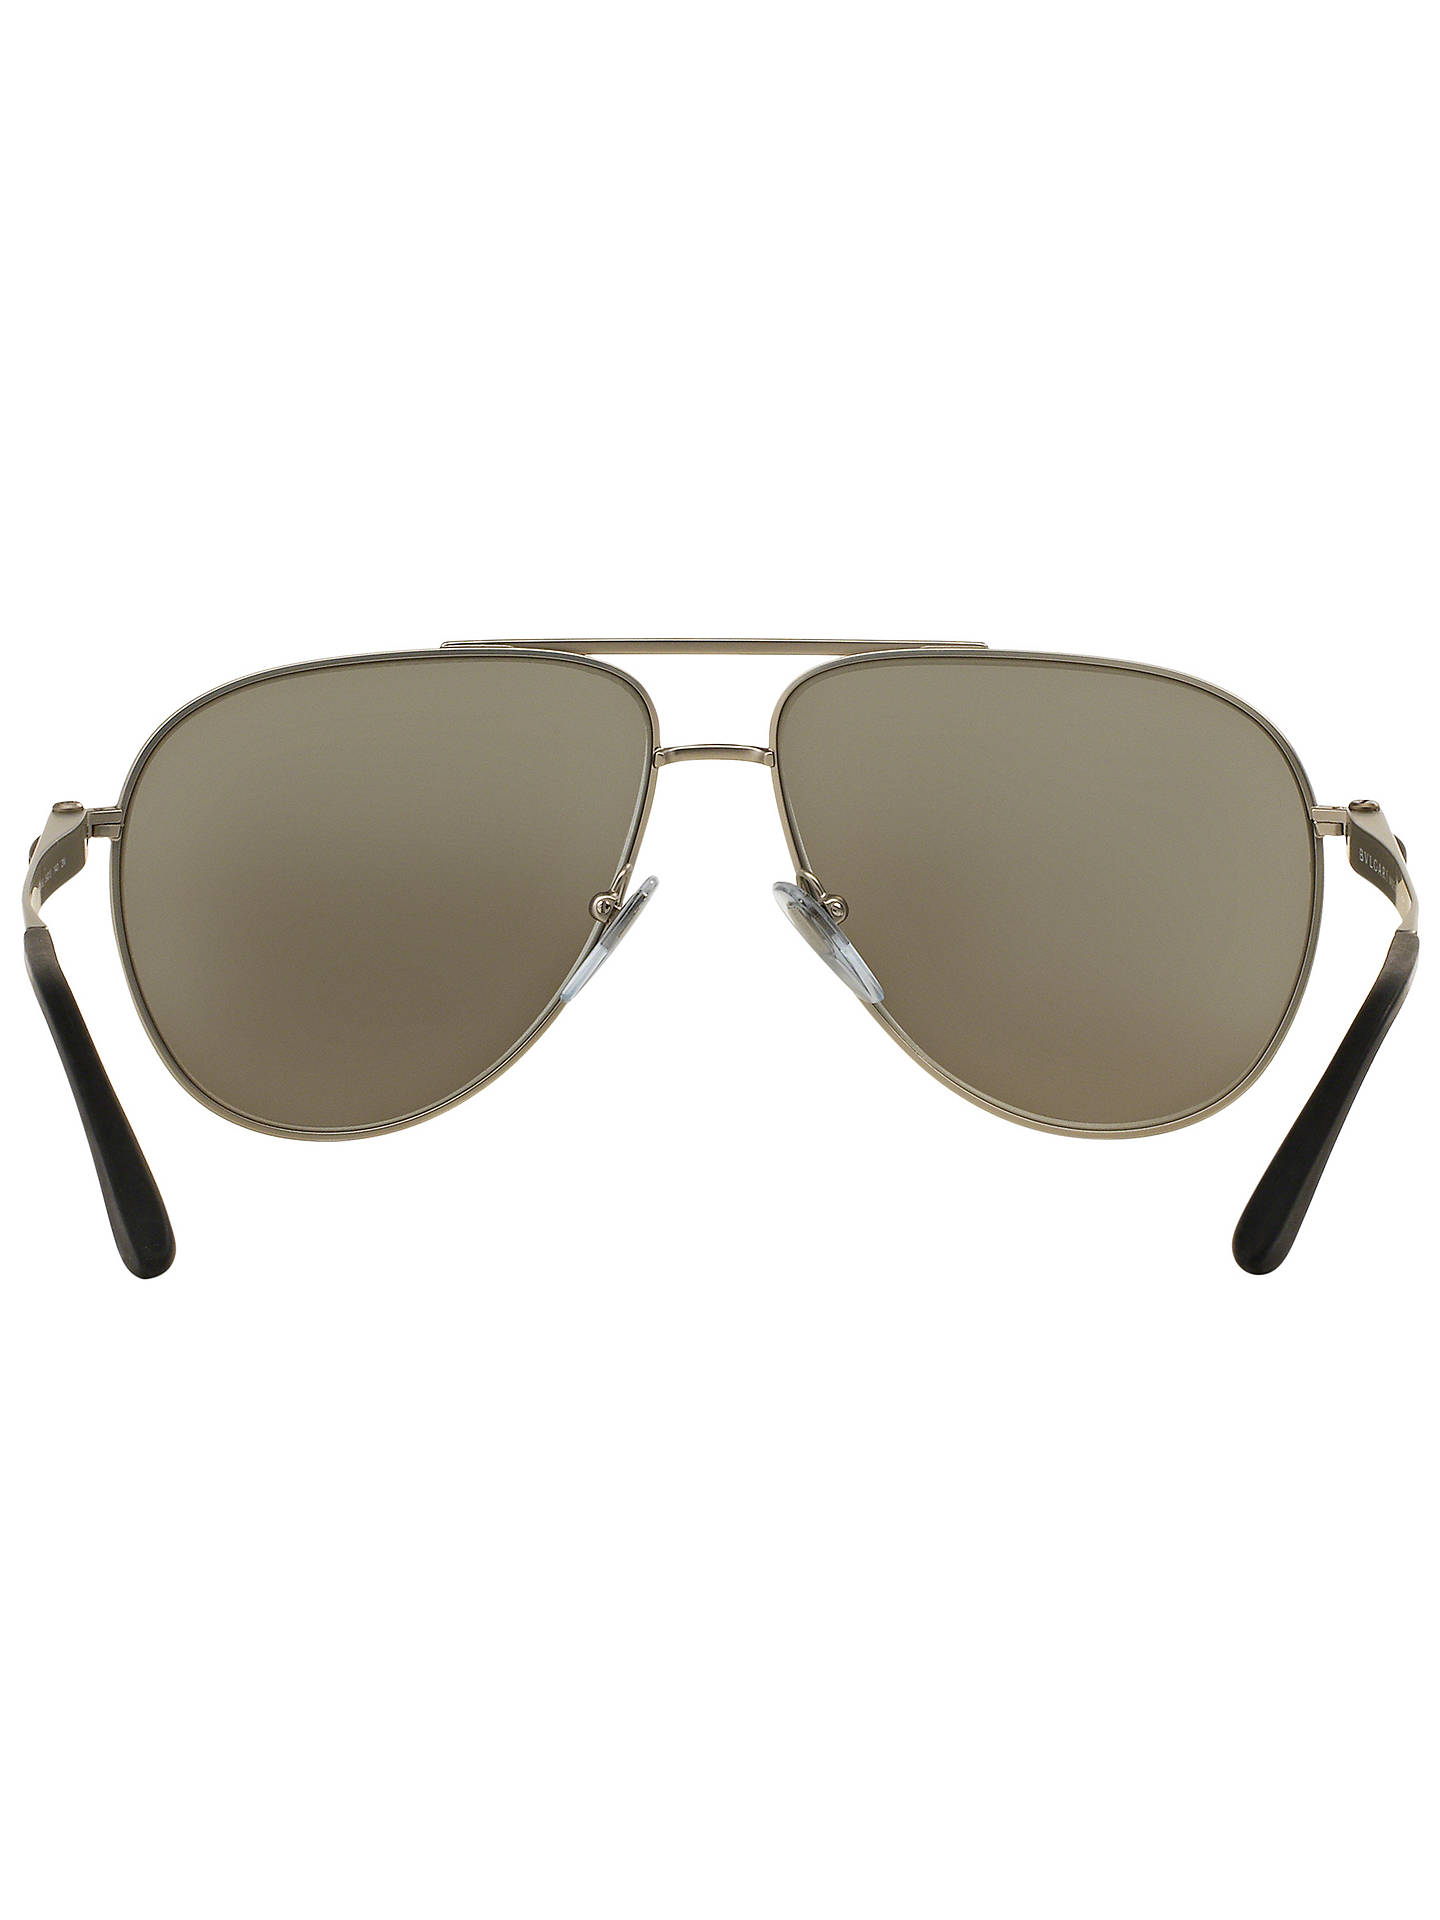 BuyBVLGARI BV5037 Aviator Sunglasses, Gold Online at johnlewis.com